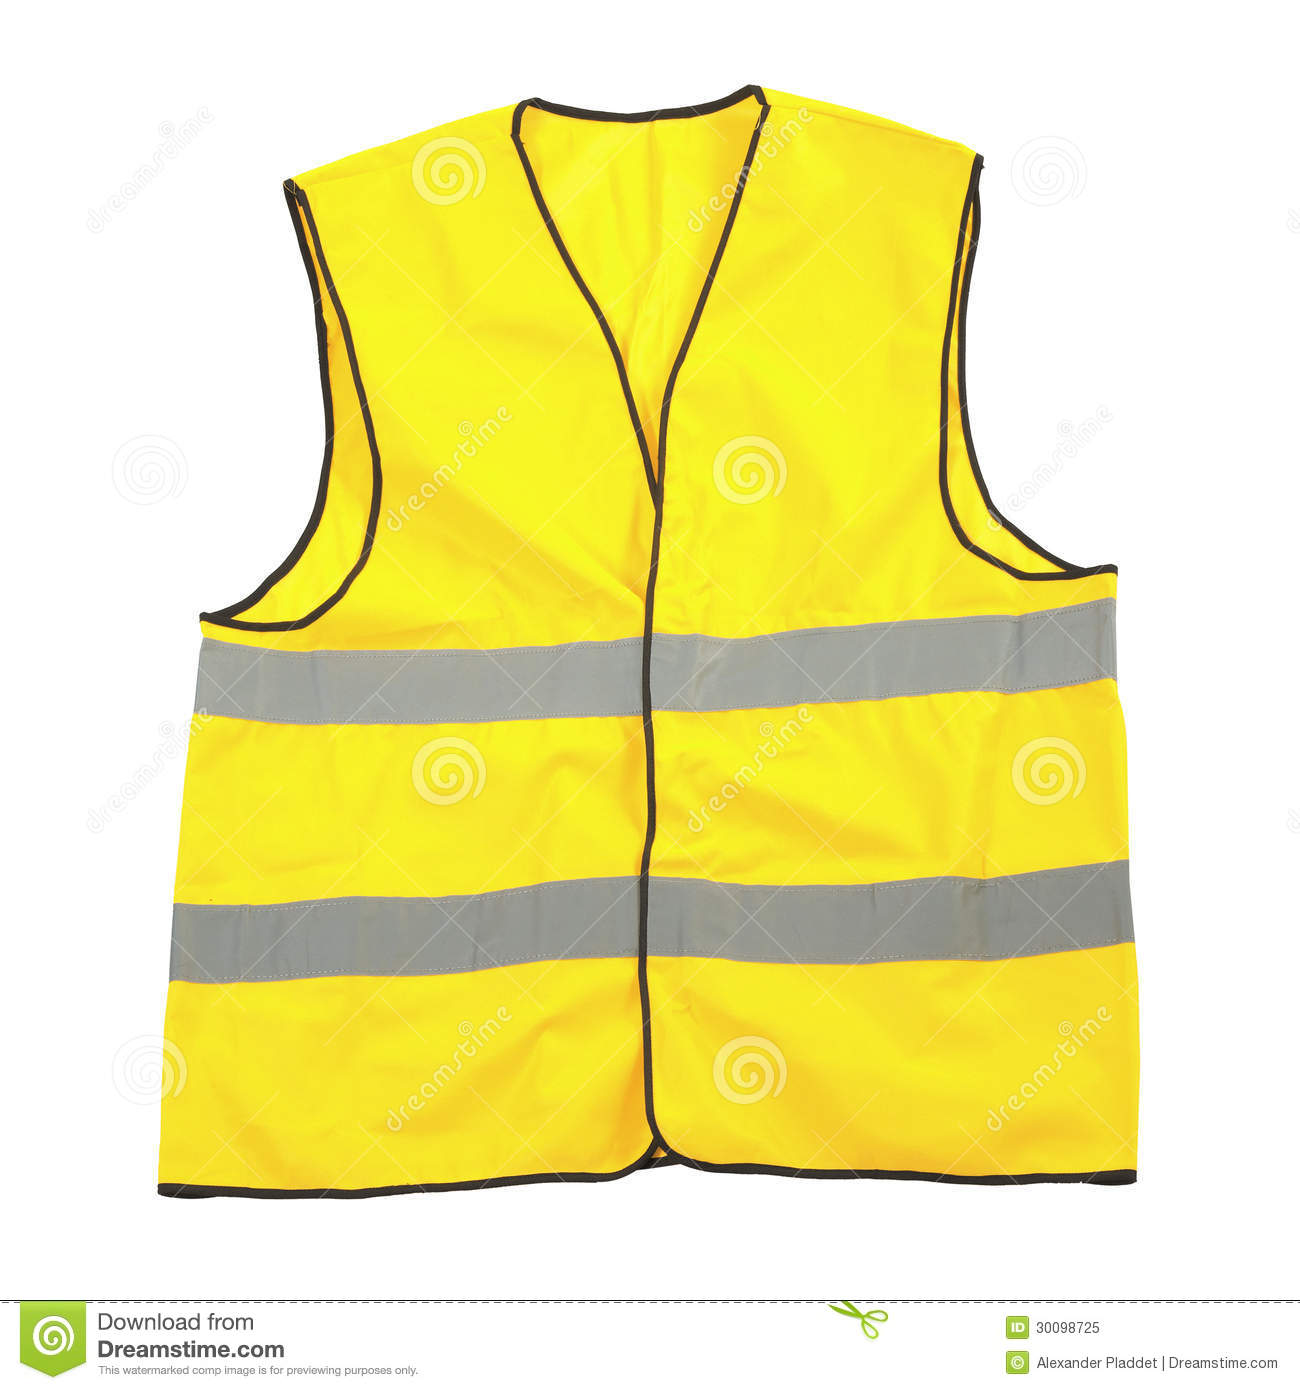 Safety Vest Clip Art Free